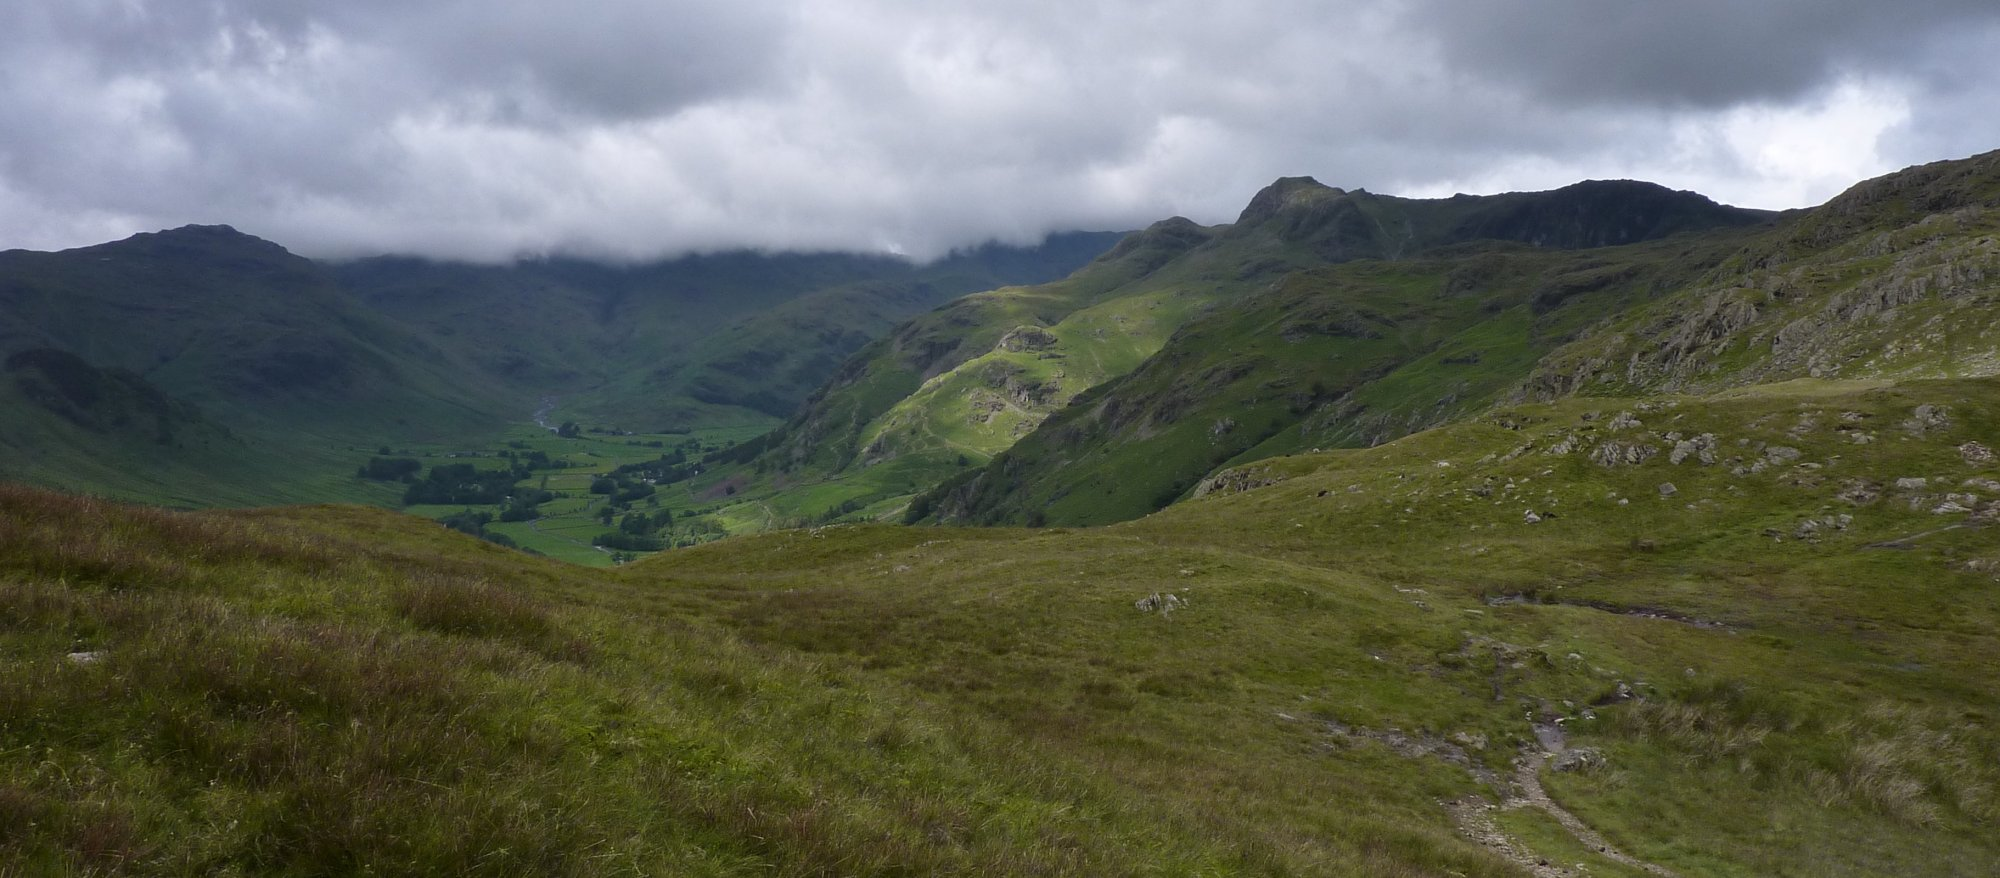 Looking down into Great Langdale